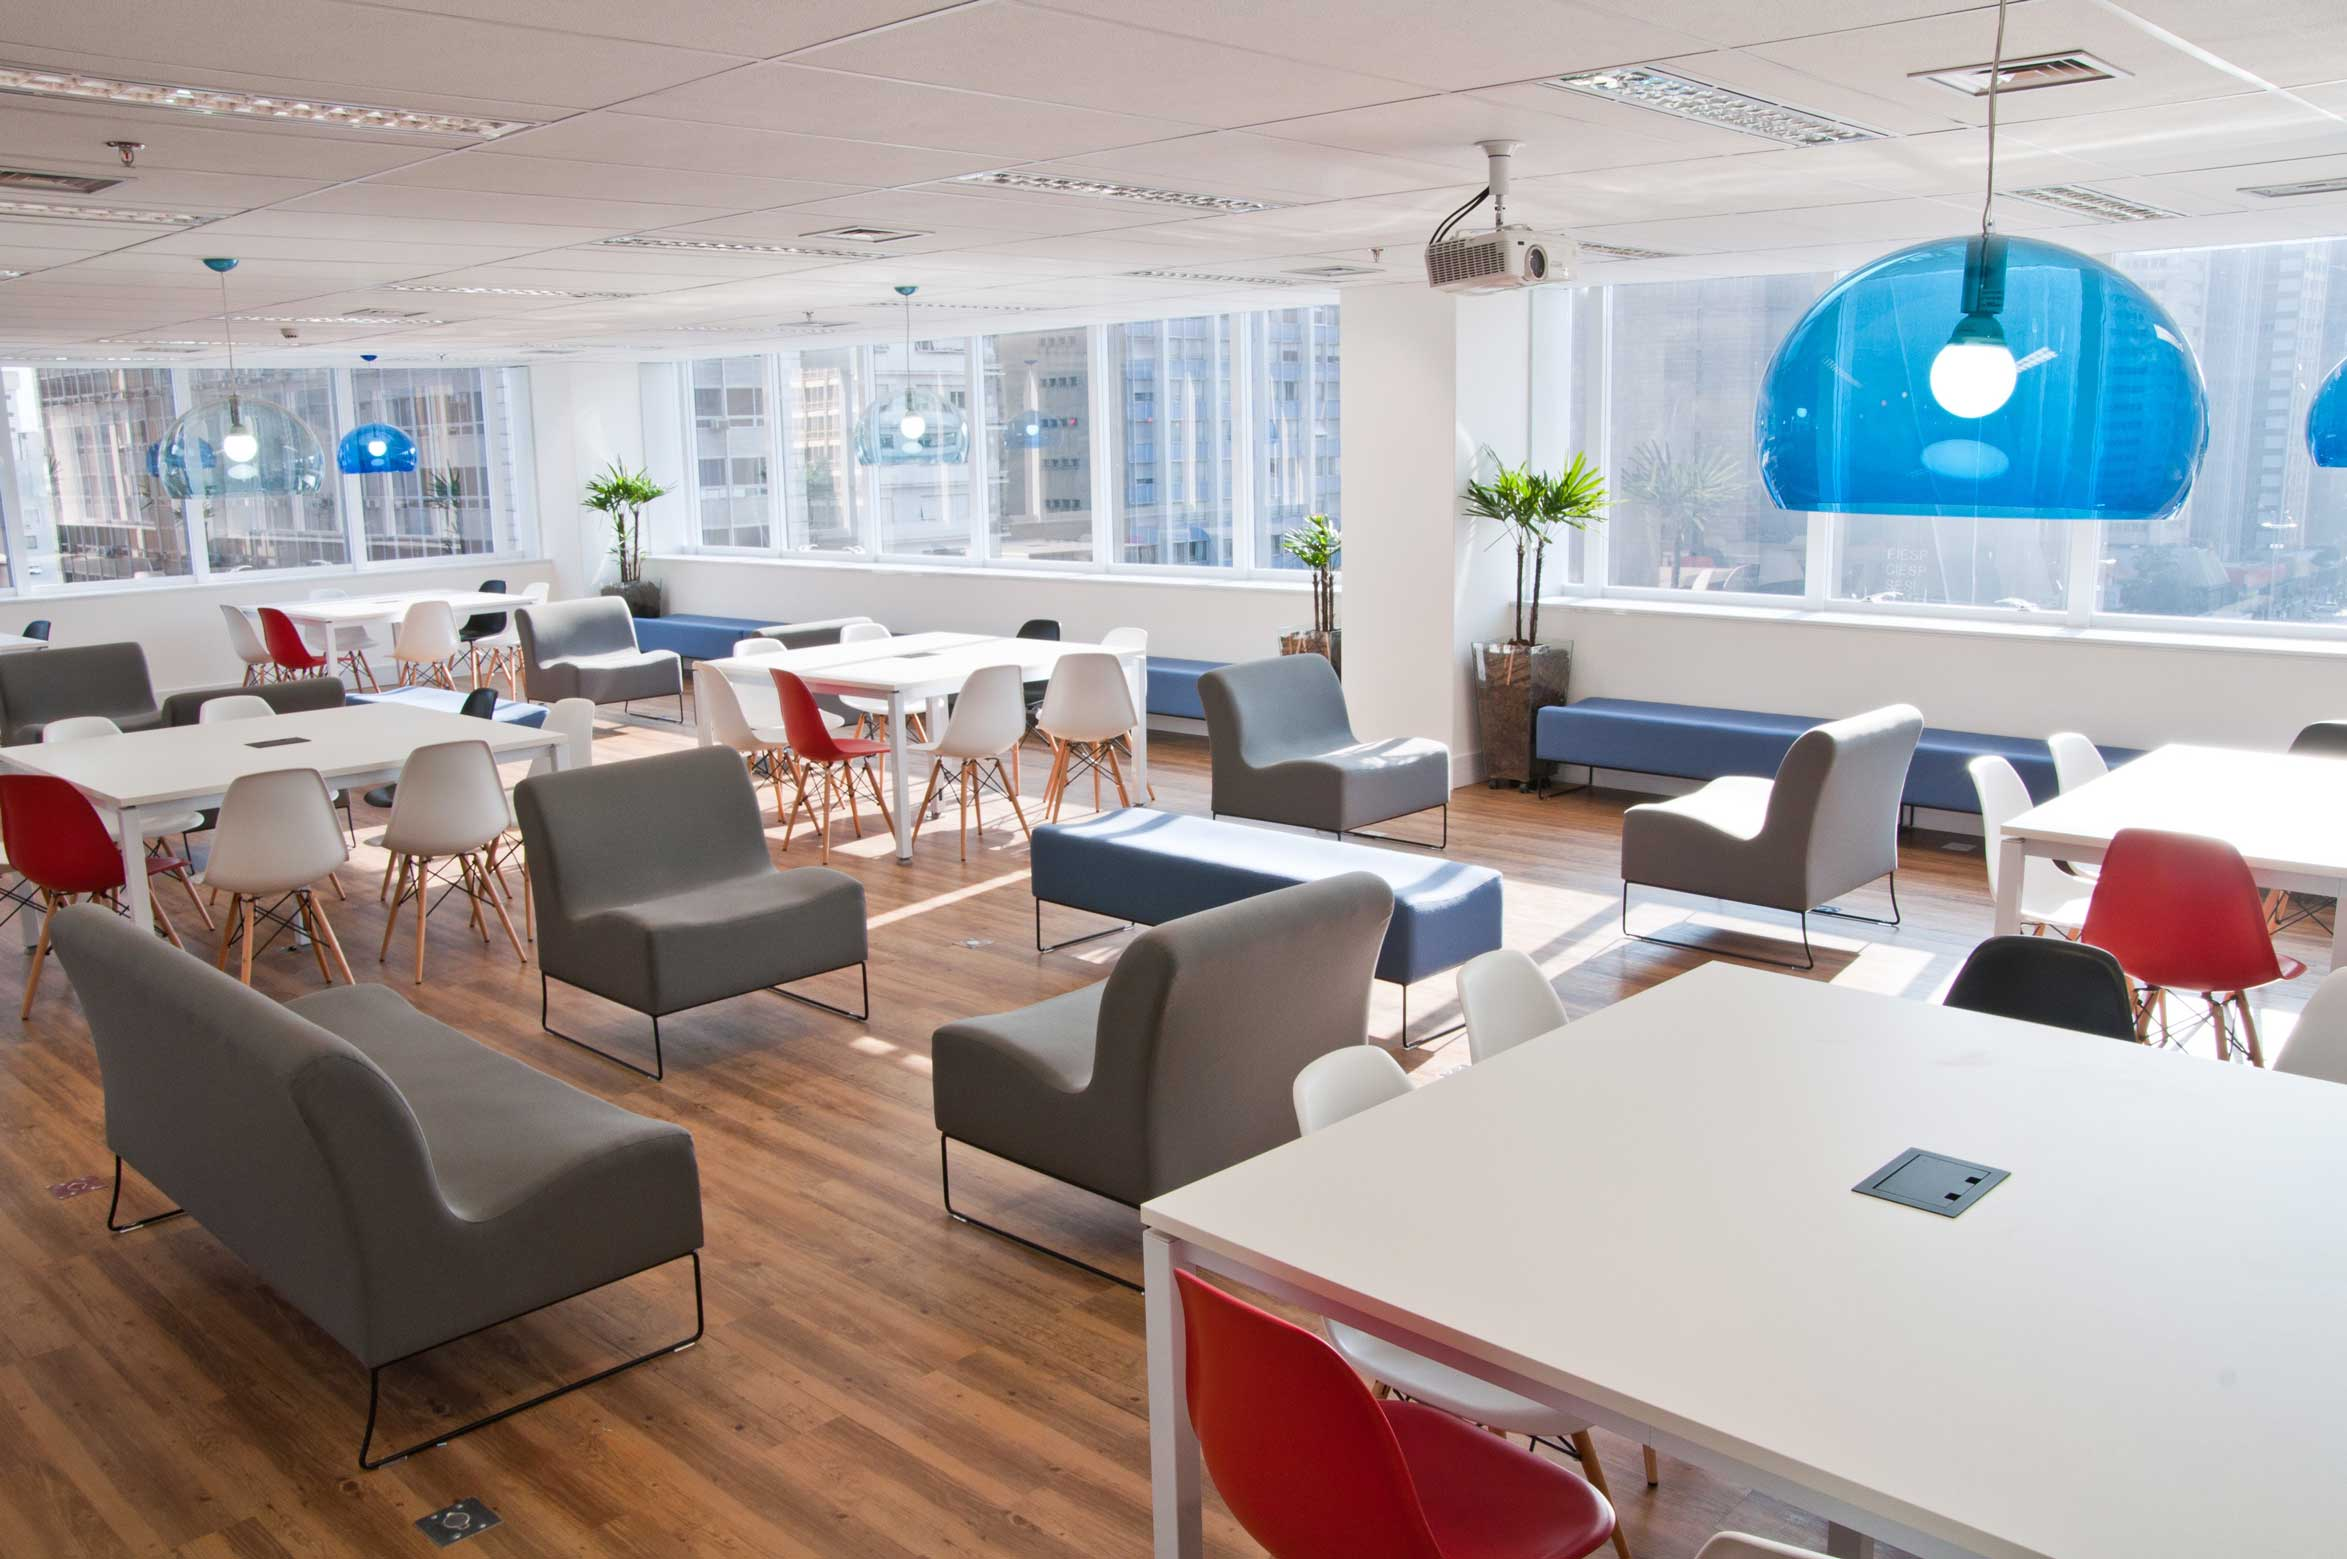 Why Coworking Spaces Work Best blog posts